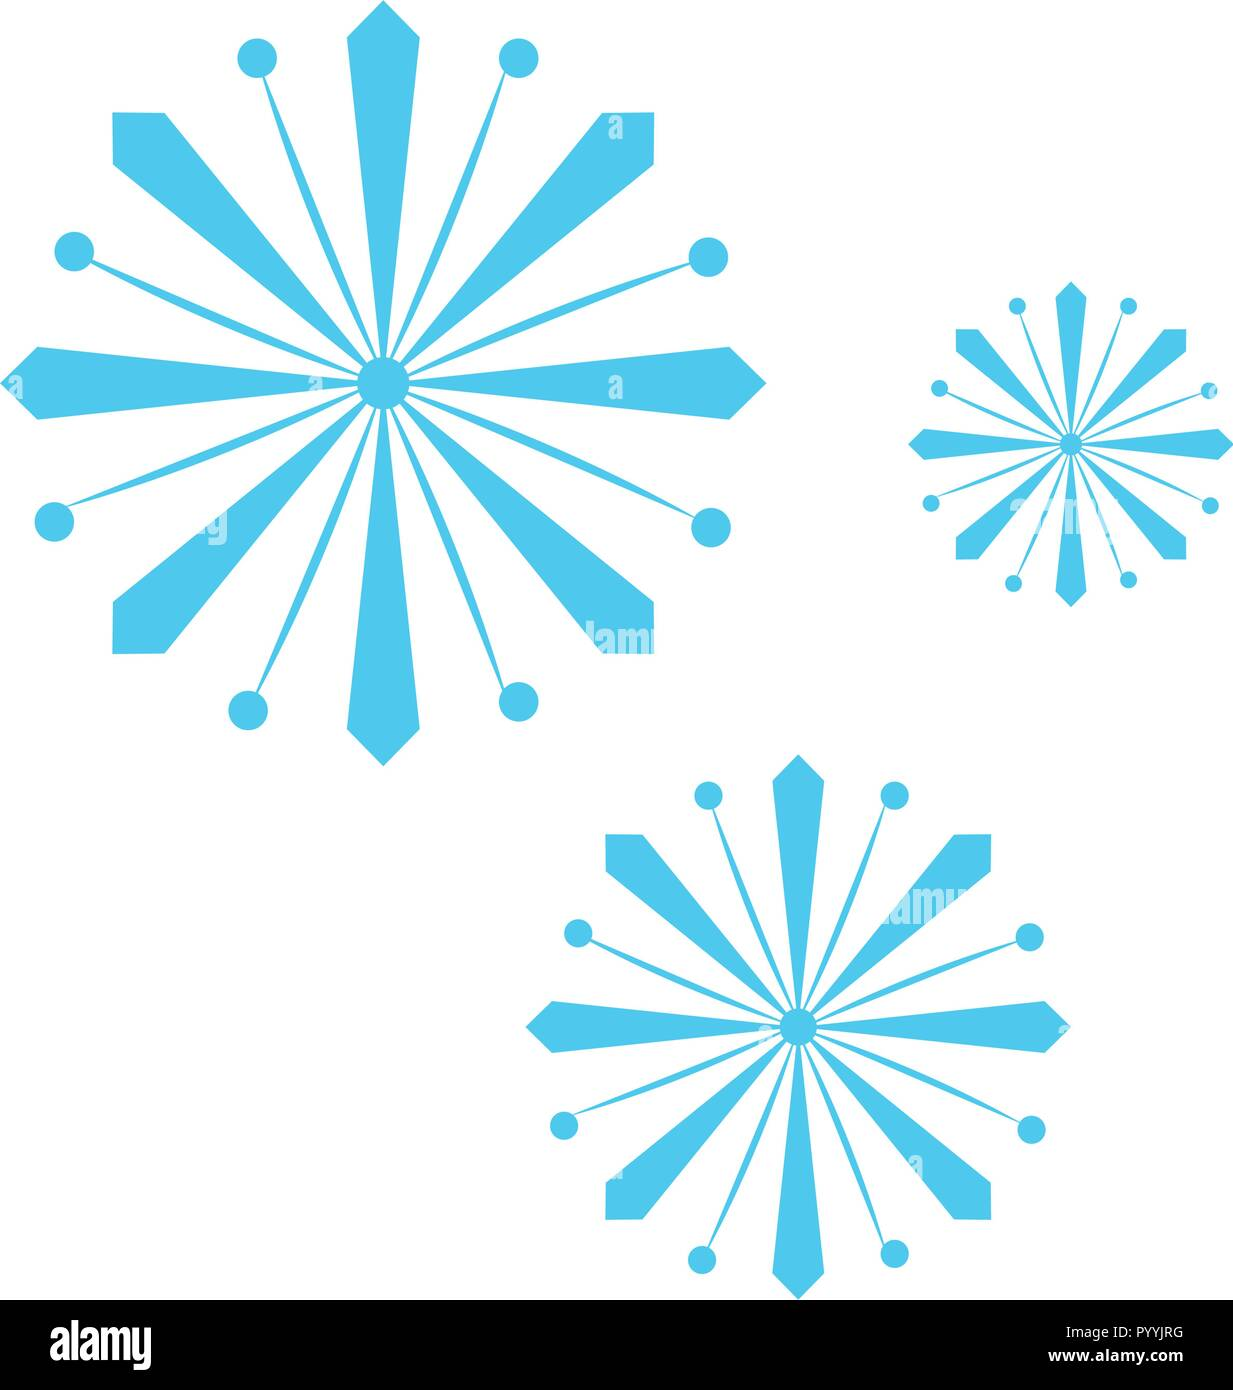 Isolated group of snowflakes Stock Vector Art & Illustration